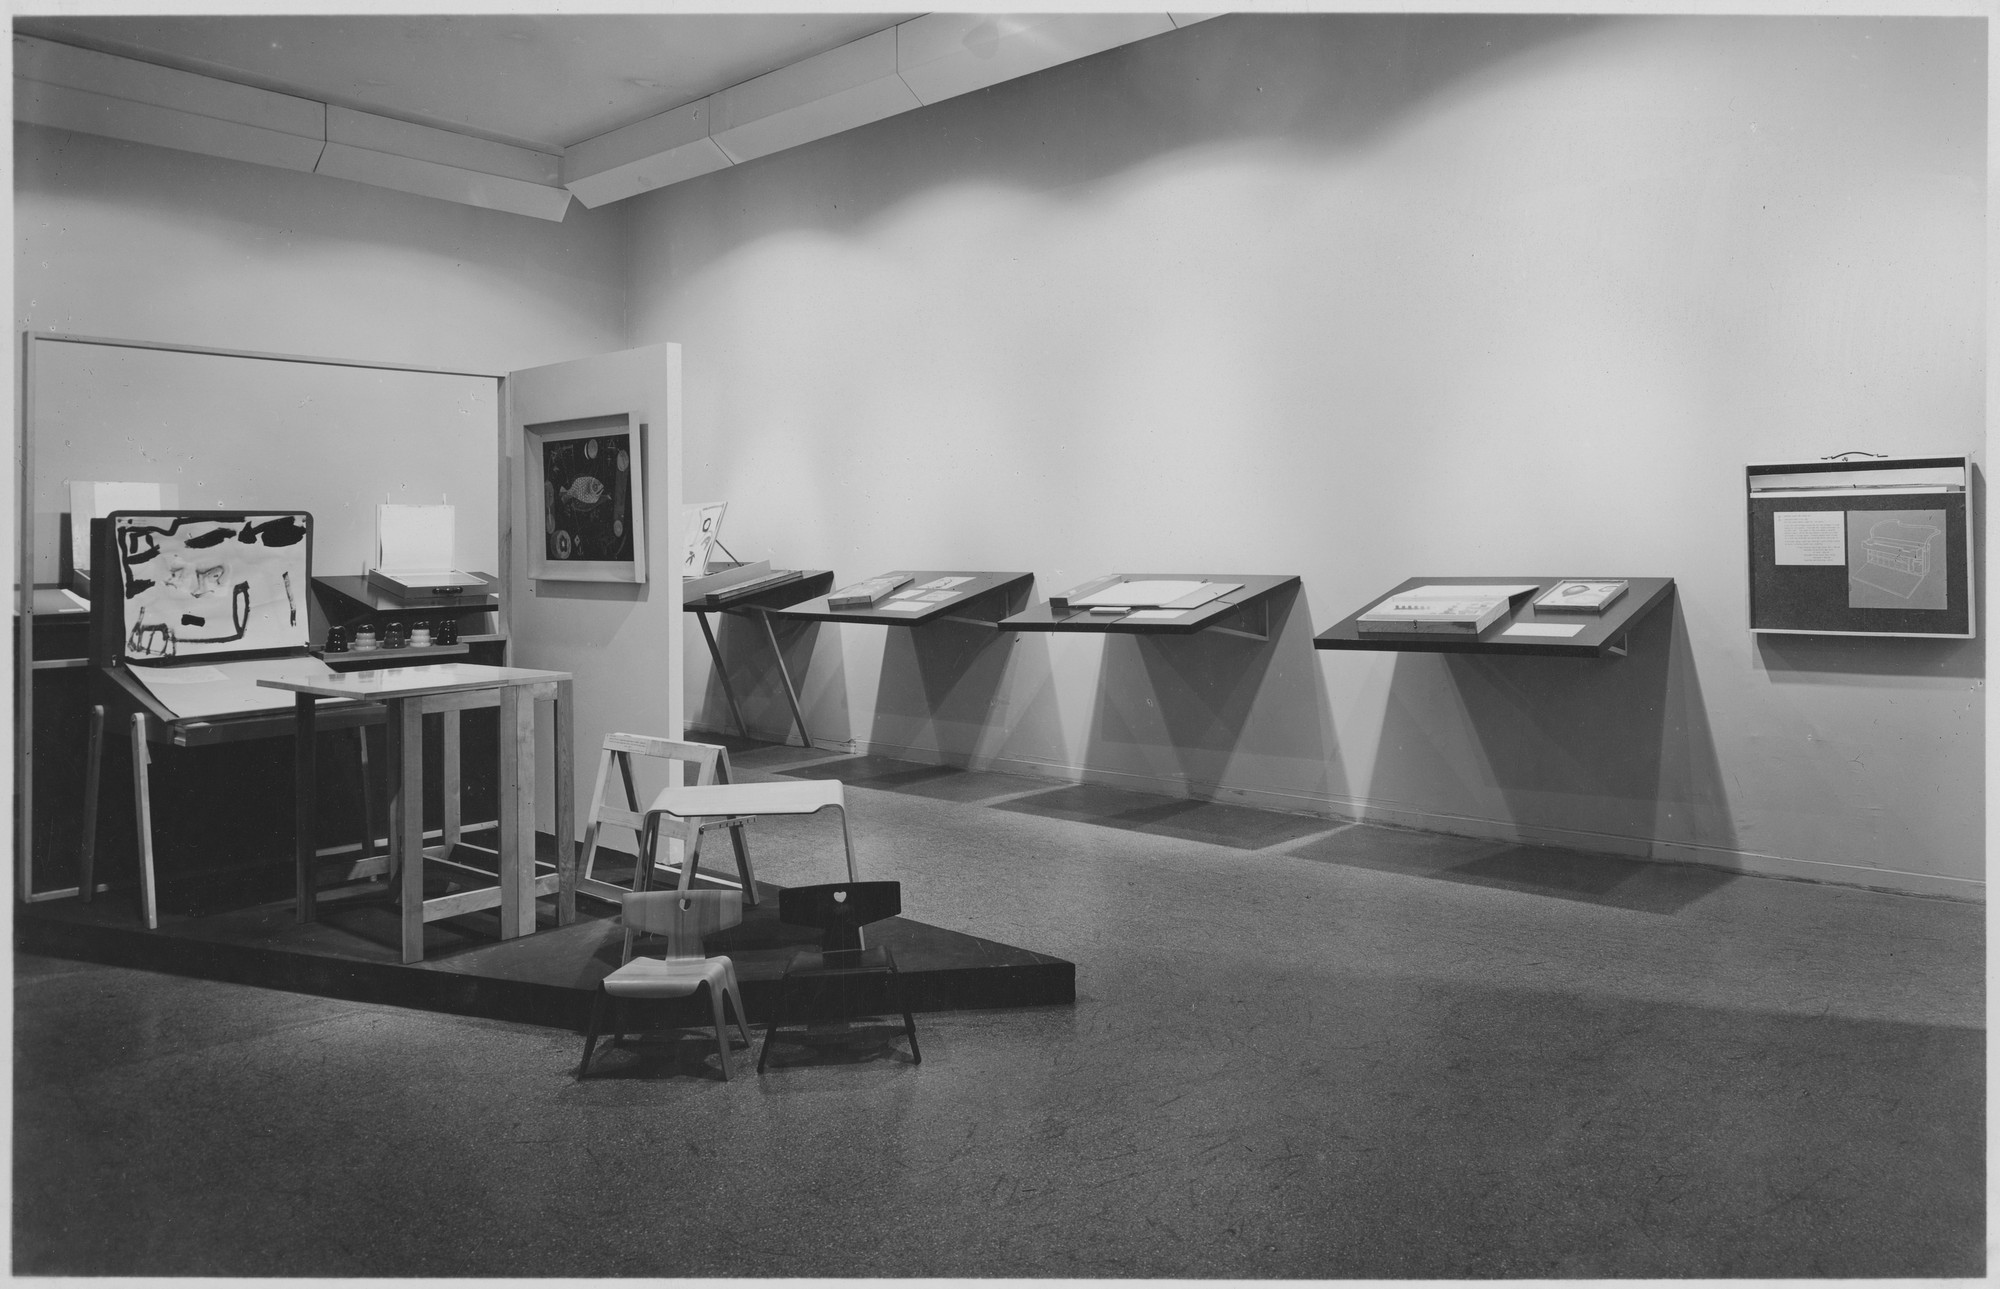 "Installation view of the exhibition, ""Designed for Children."" June 11, 1946–October 6, 1946. Photographic Archive. The Museum of Modern Art Archives, New York. IN320.1. Photograph by Soichi Sunami."